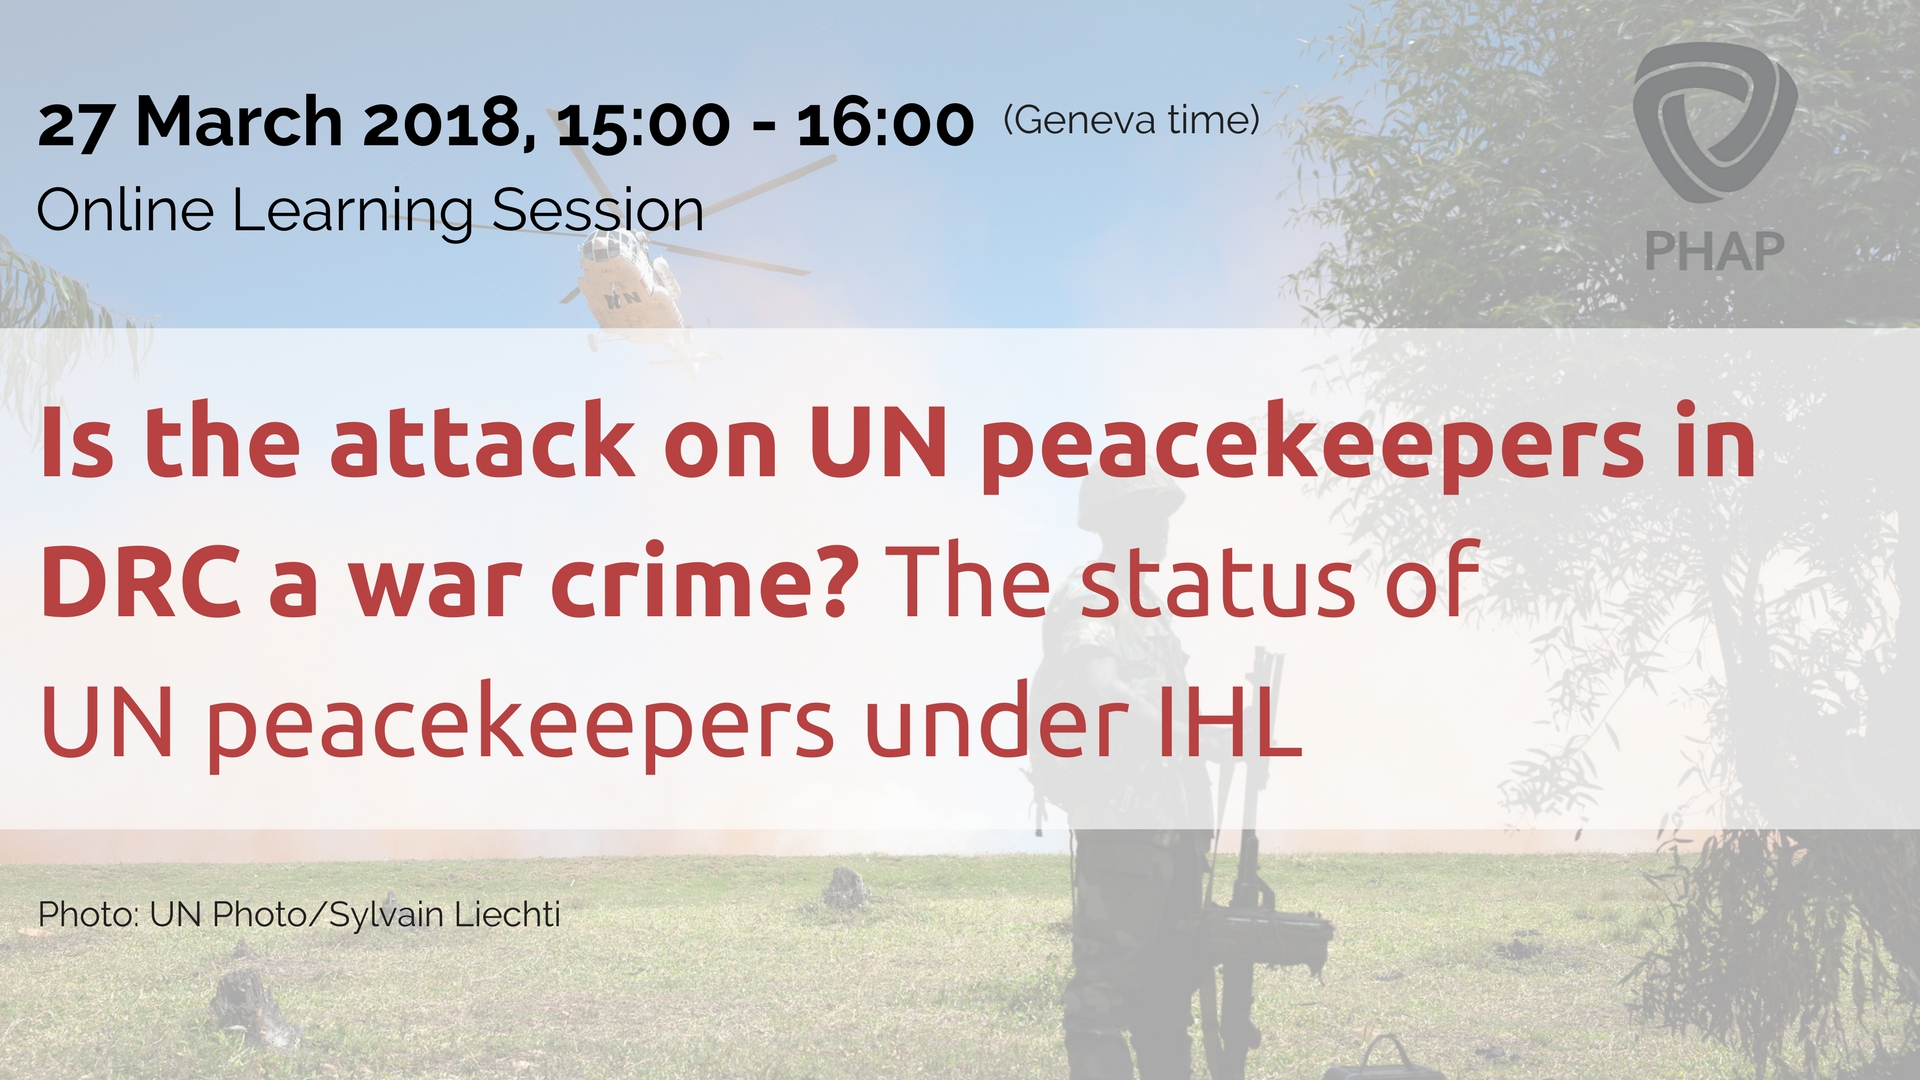 OLS HLP: Is the attack on UN peacekeepers in DRC a war crime